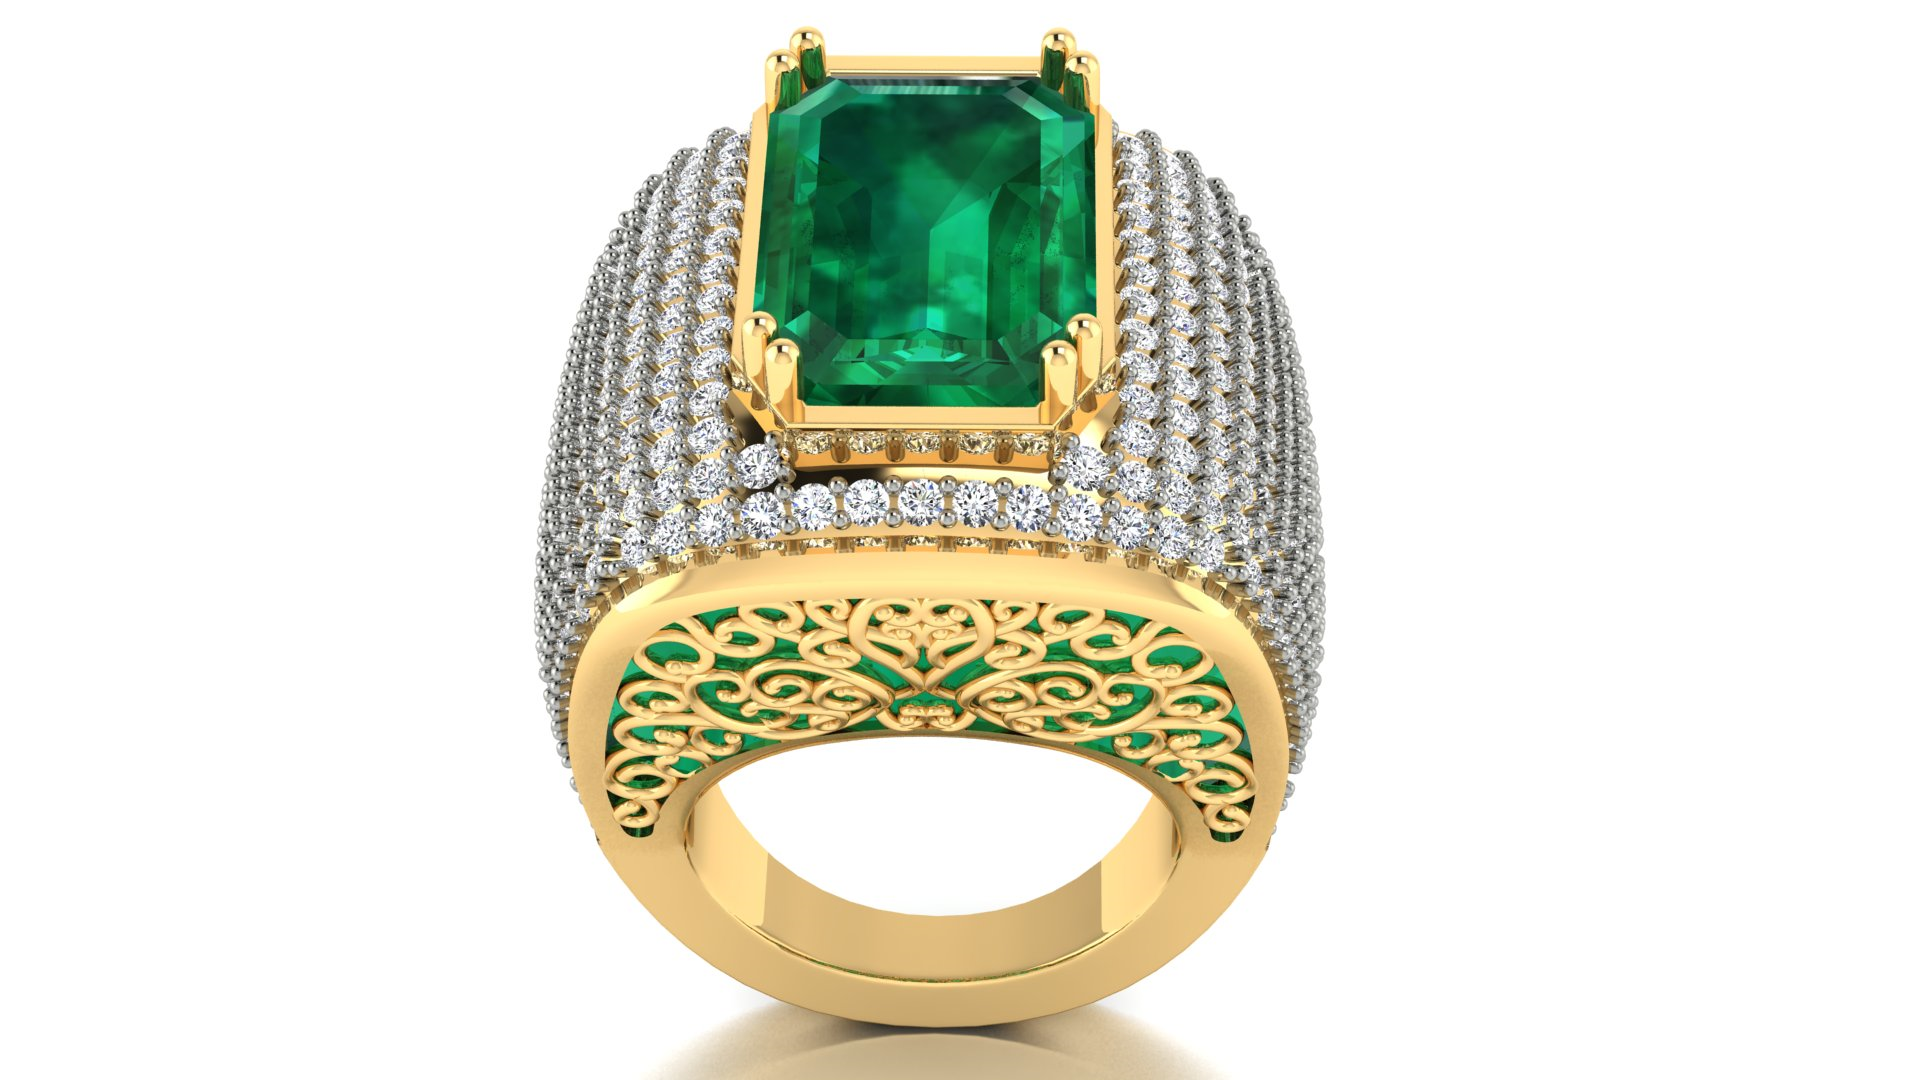 Queen Style Royal Ring for Women